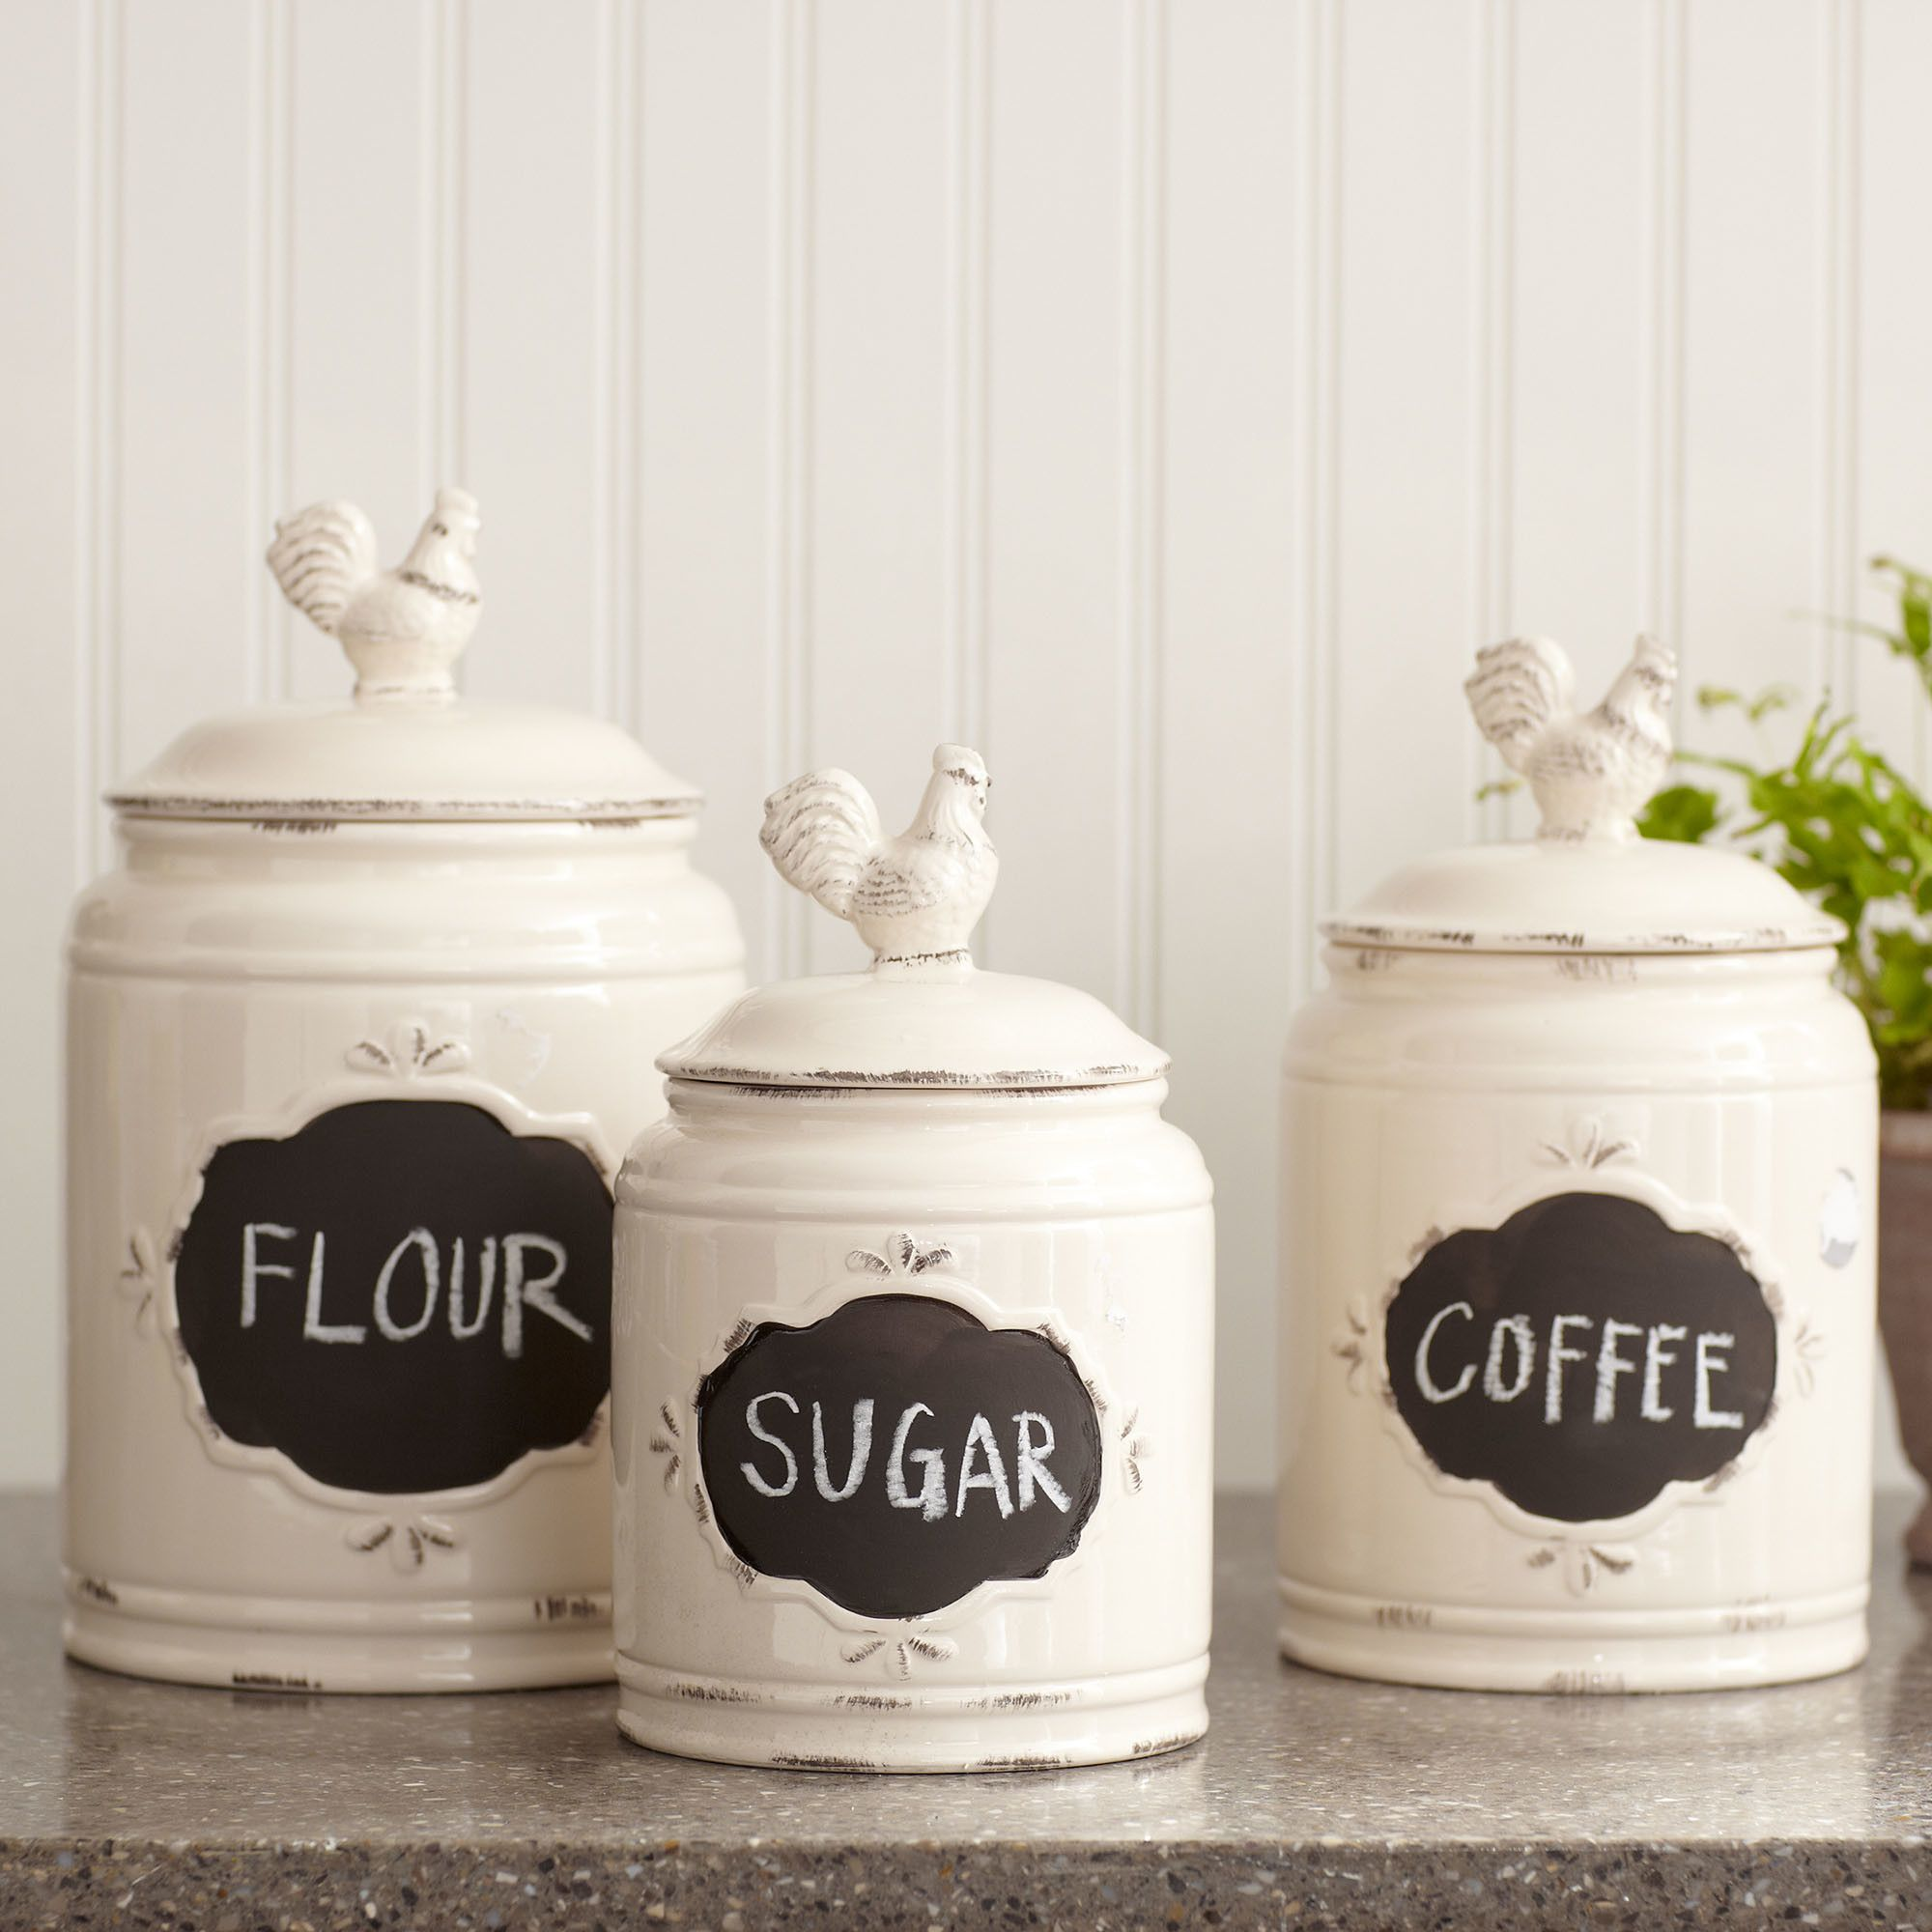 Attractive kitchen of charming interior design for home remodeling with country canisters for kitchen